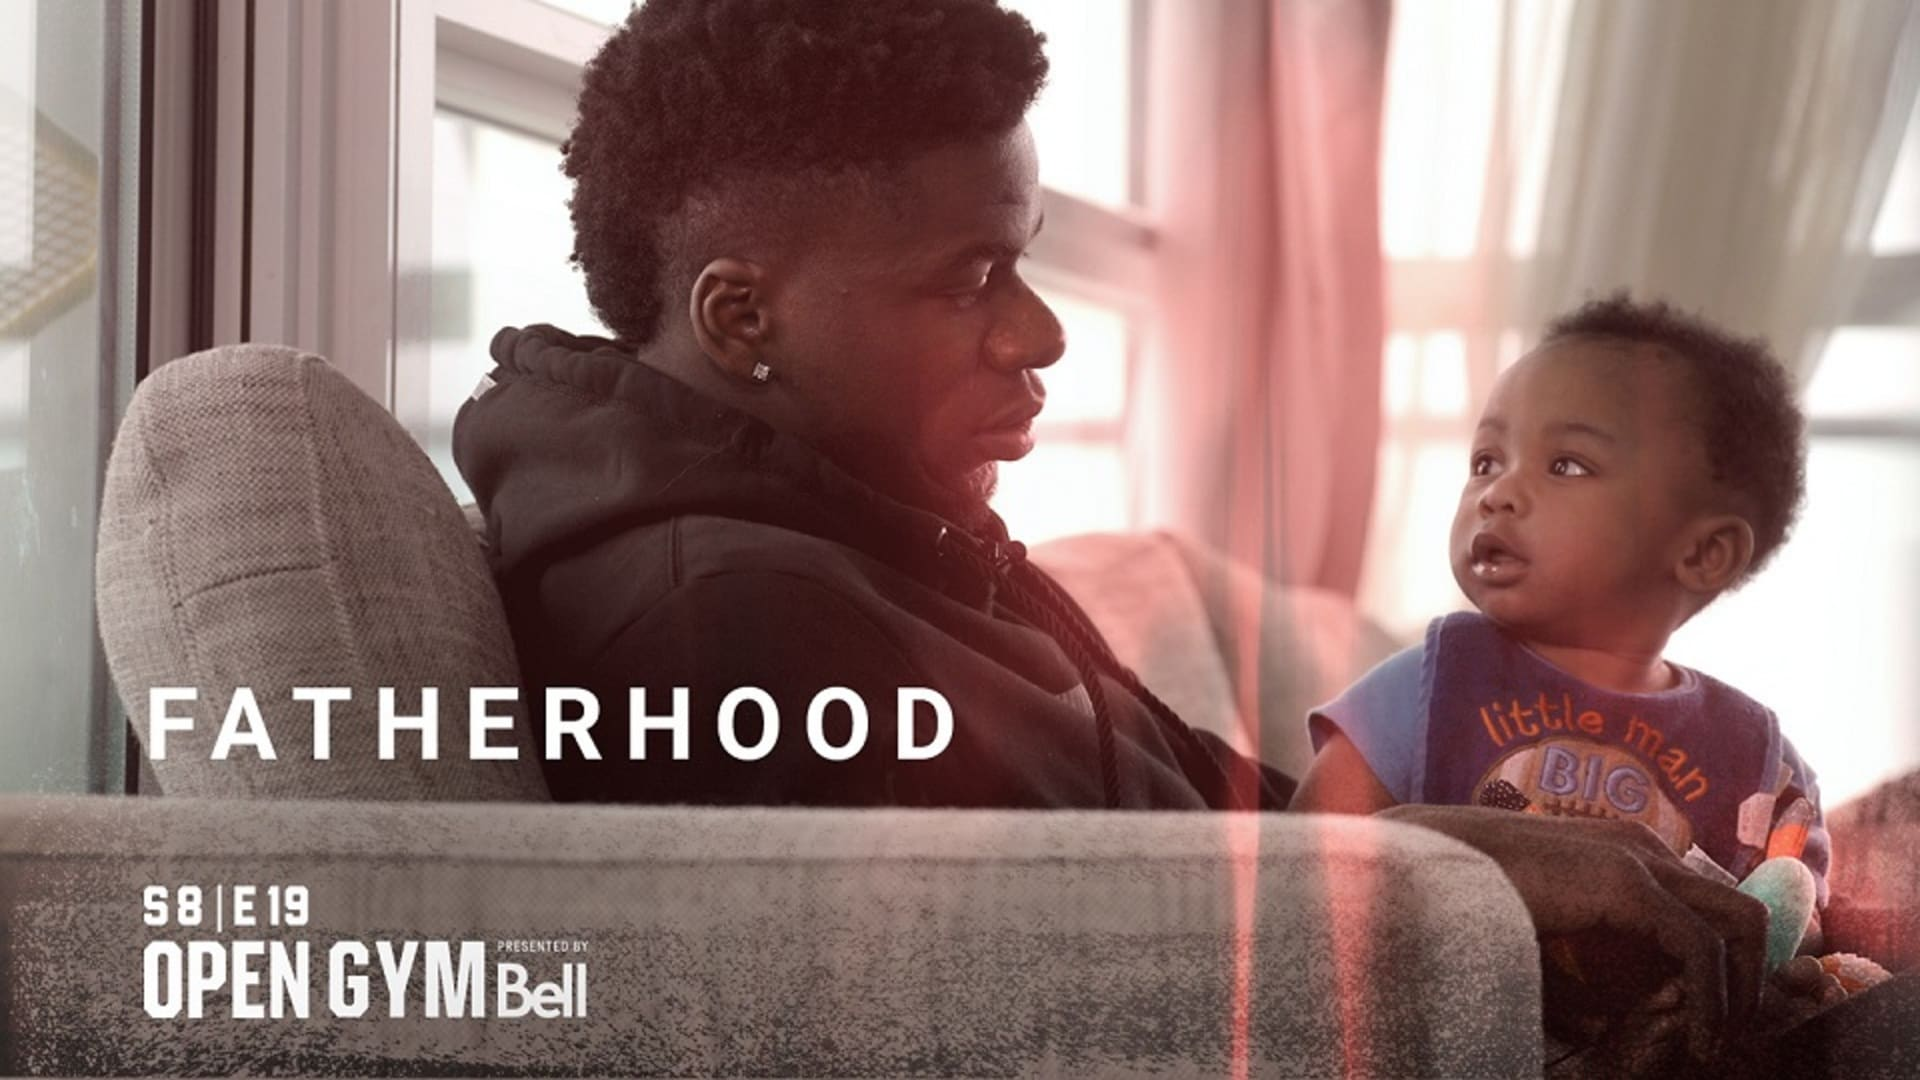 Raptors rookie Terence Davis II, on fatherhood | Open Gym presented by Bell: S08E19